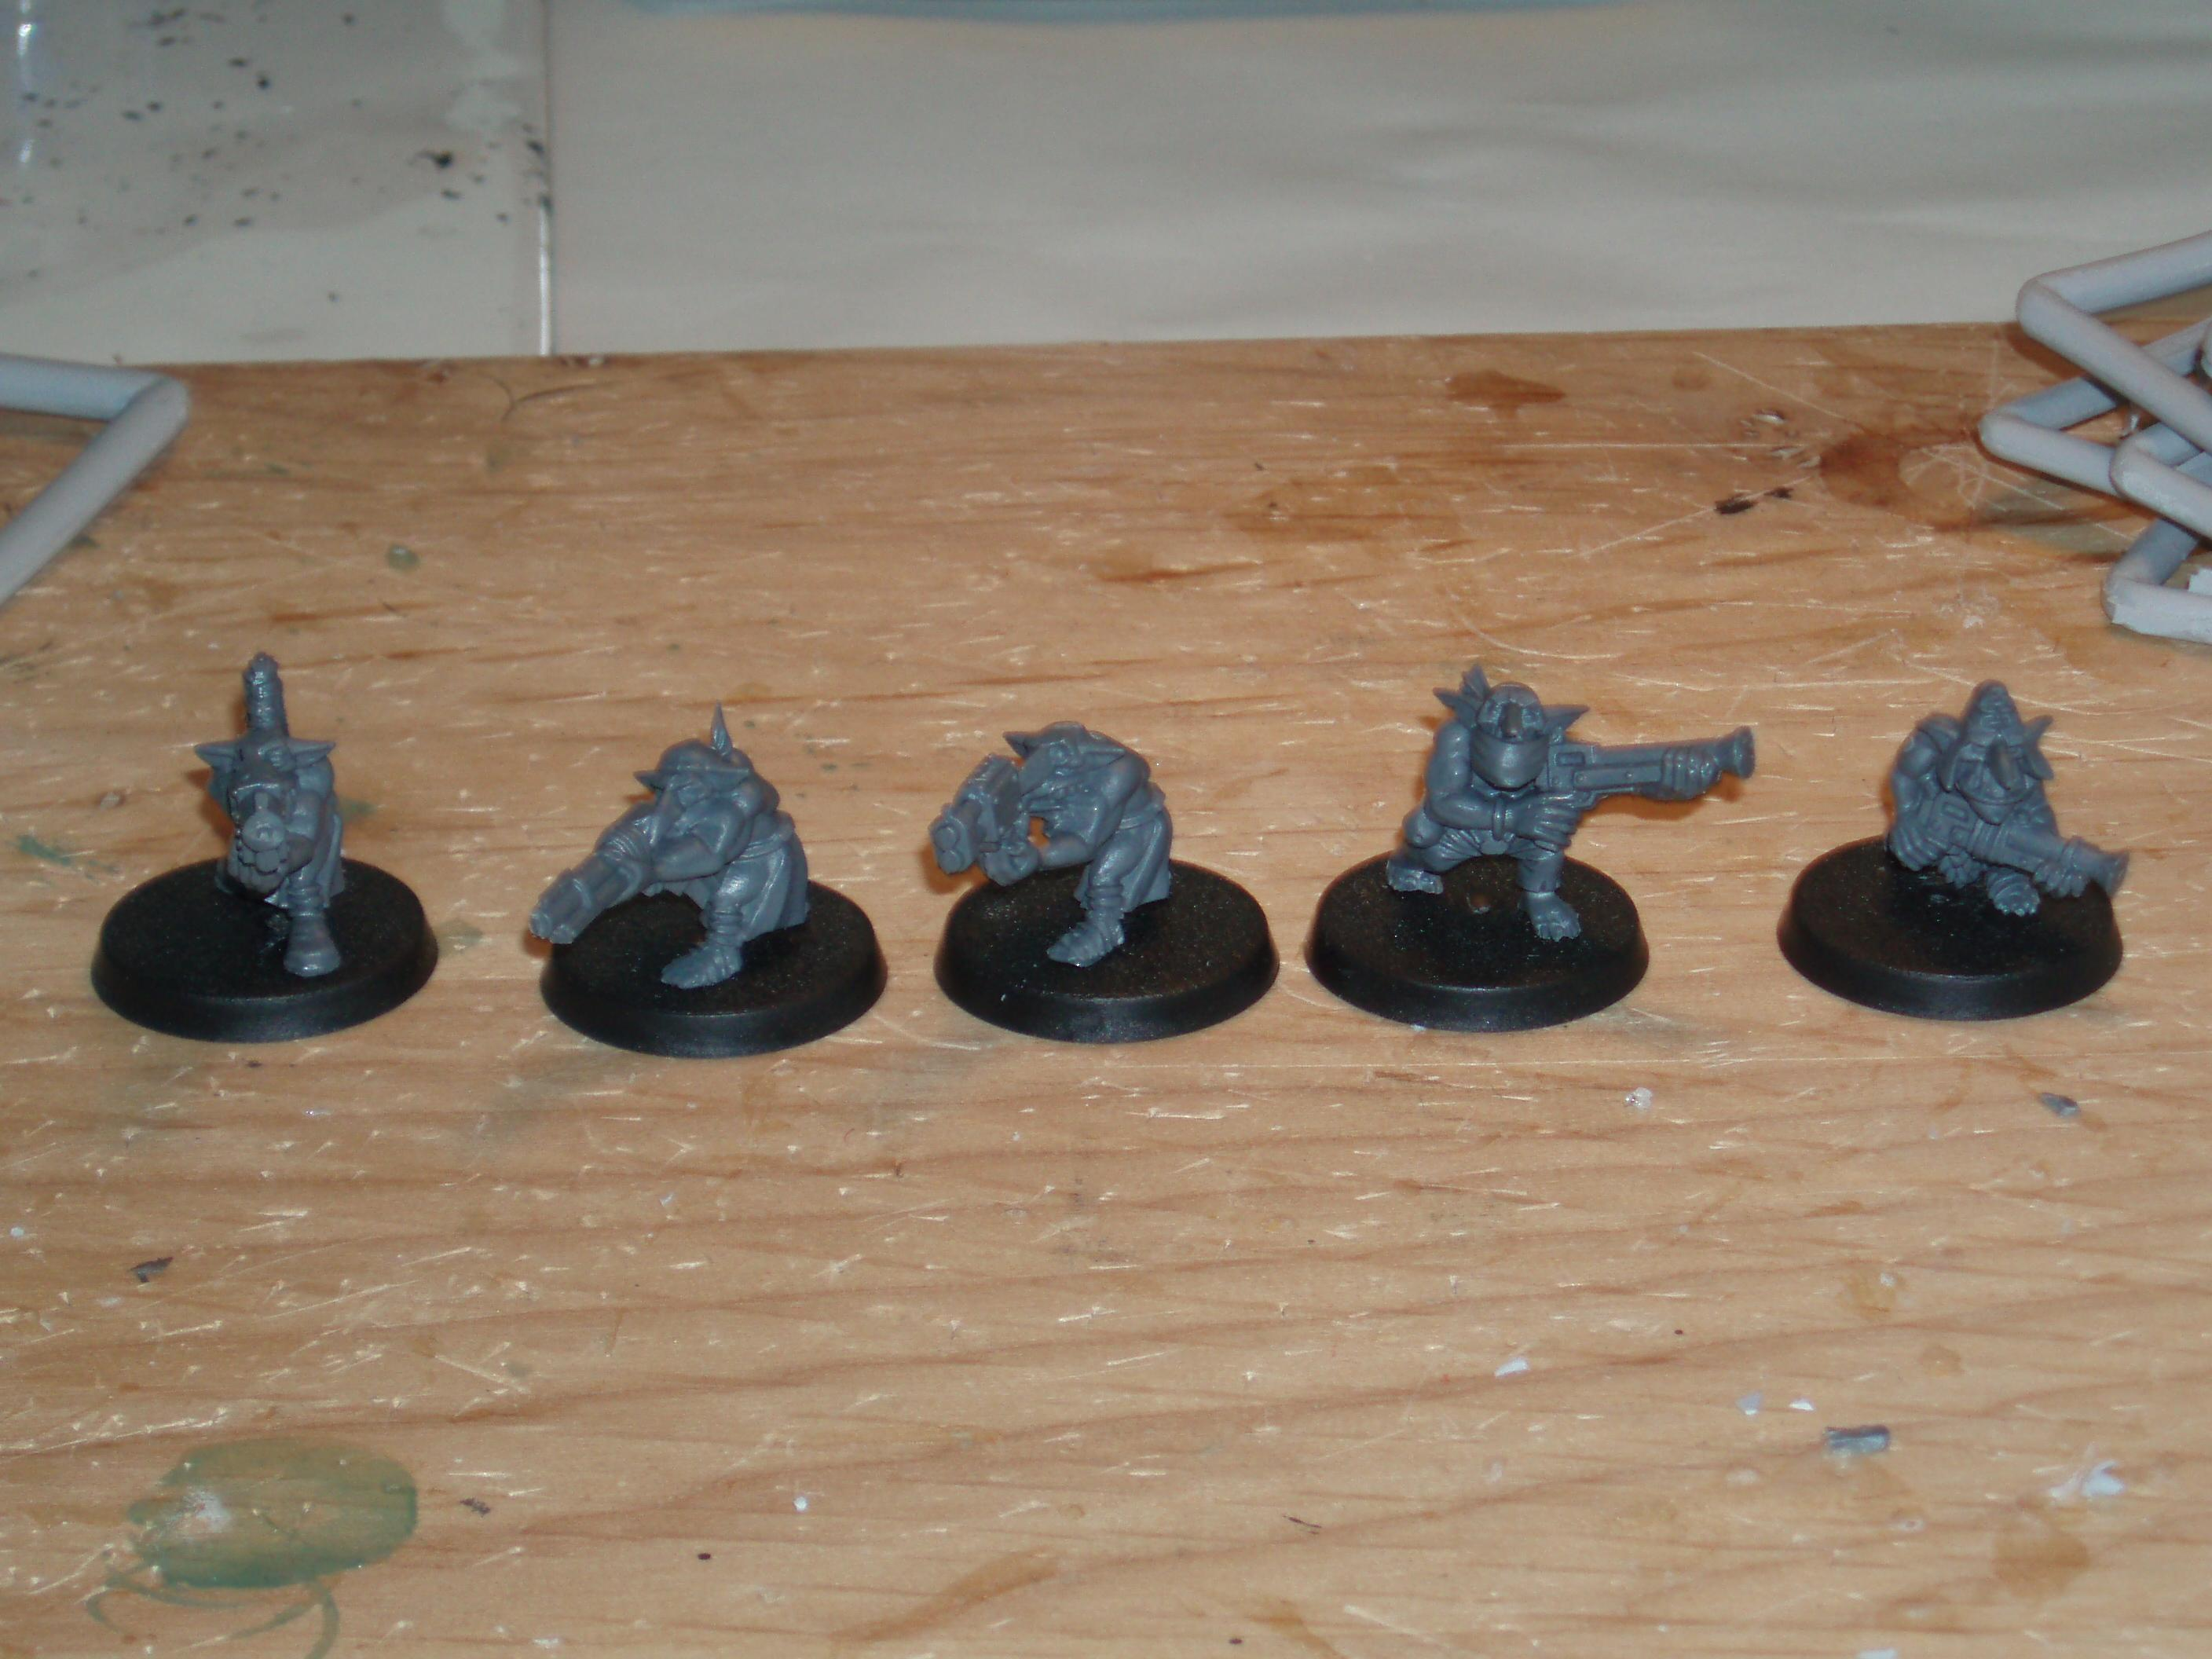 No changes for these grots: